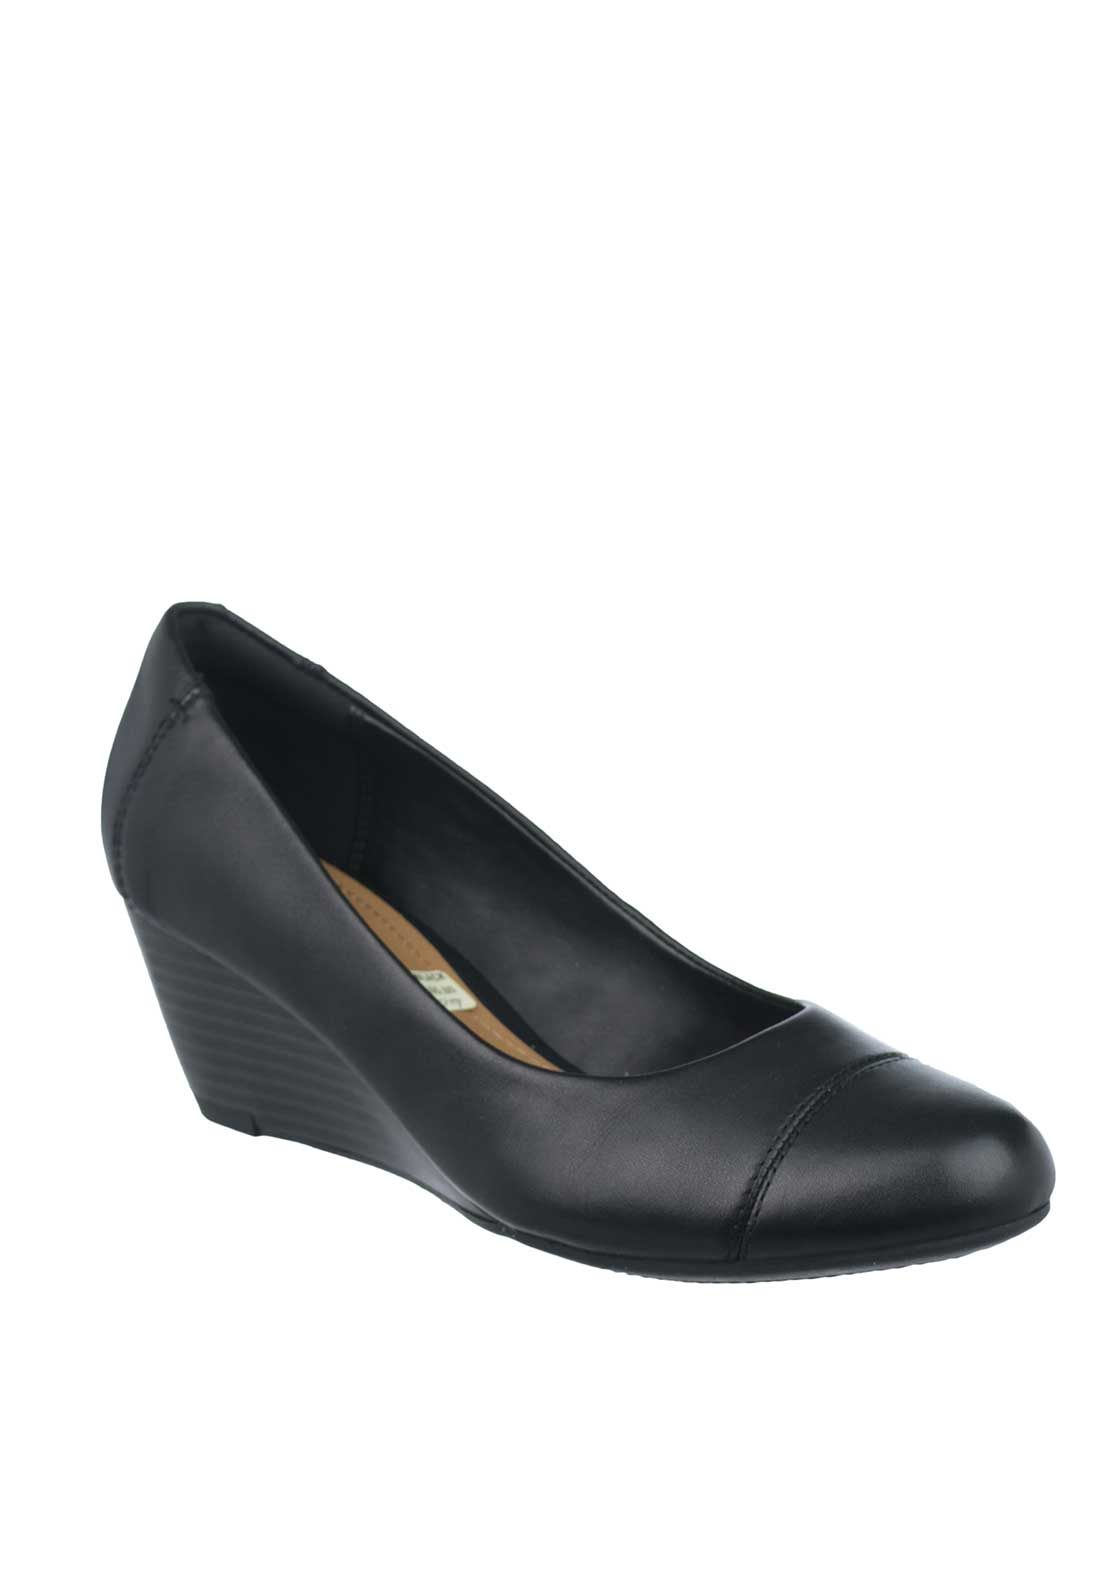 Clarks Womens Brielle Andi Leather Wedged Pump, Black